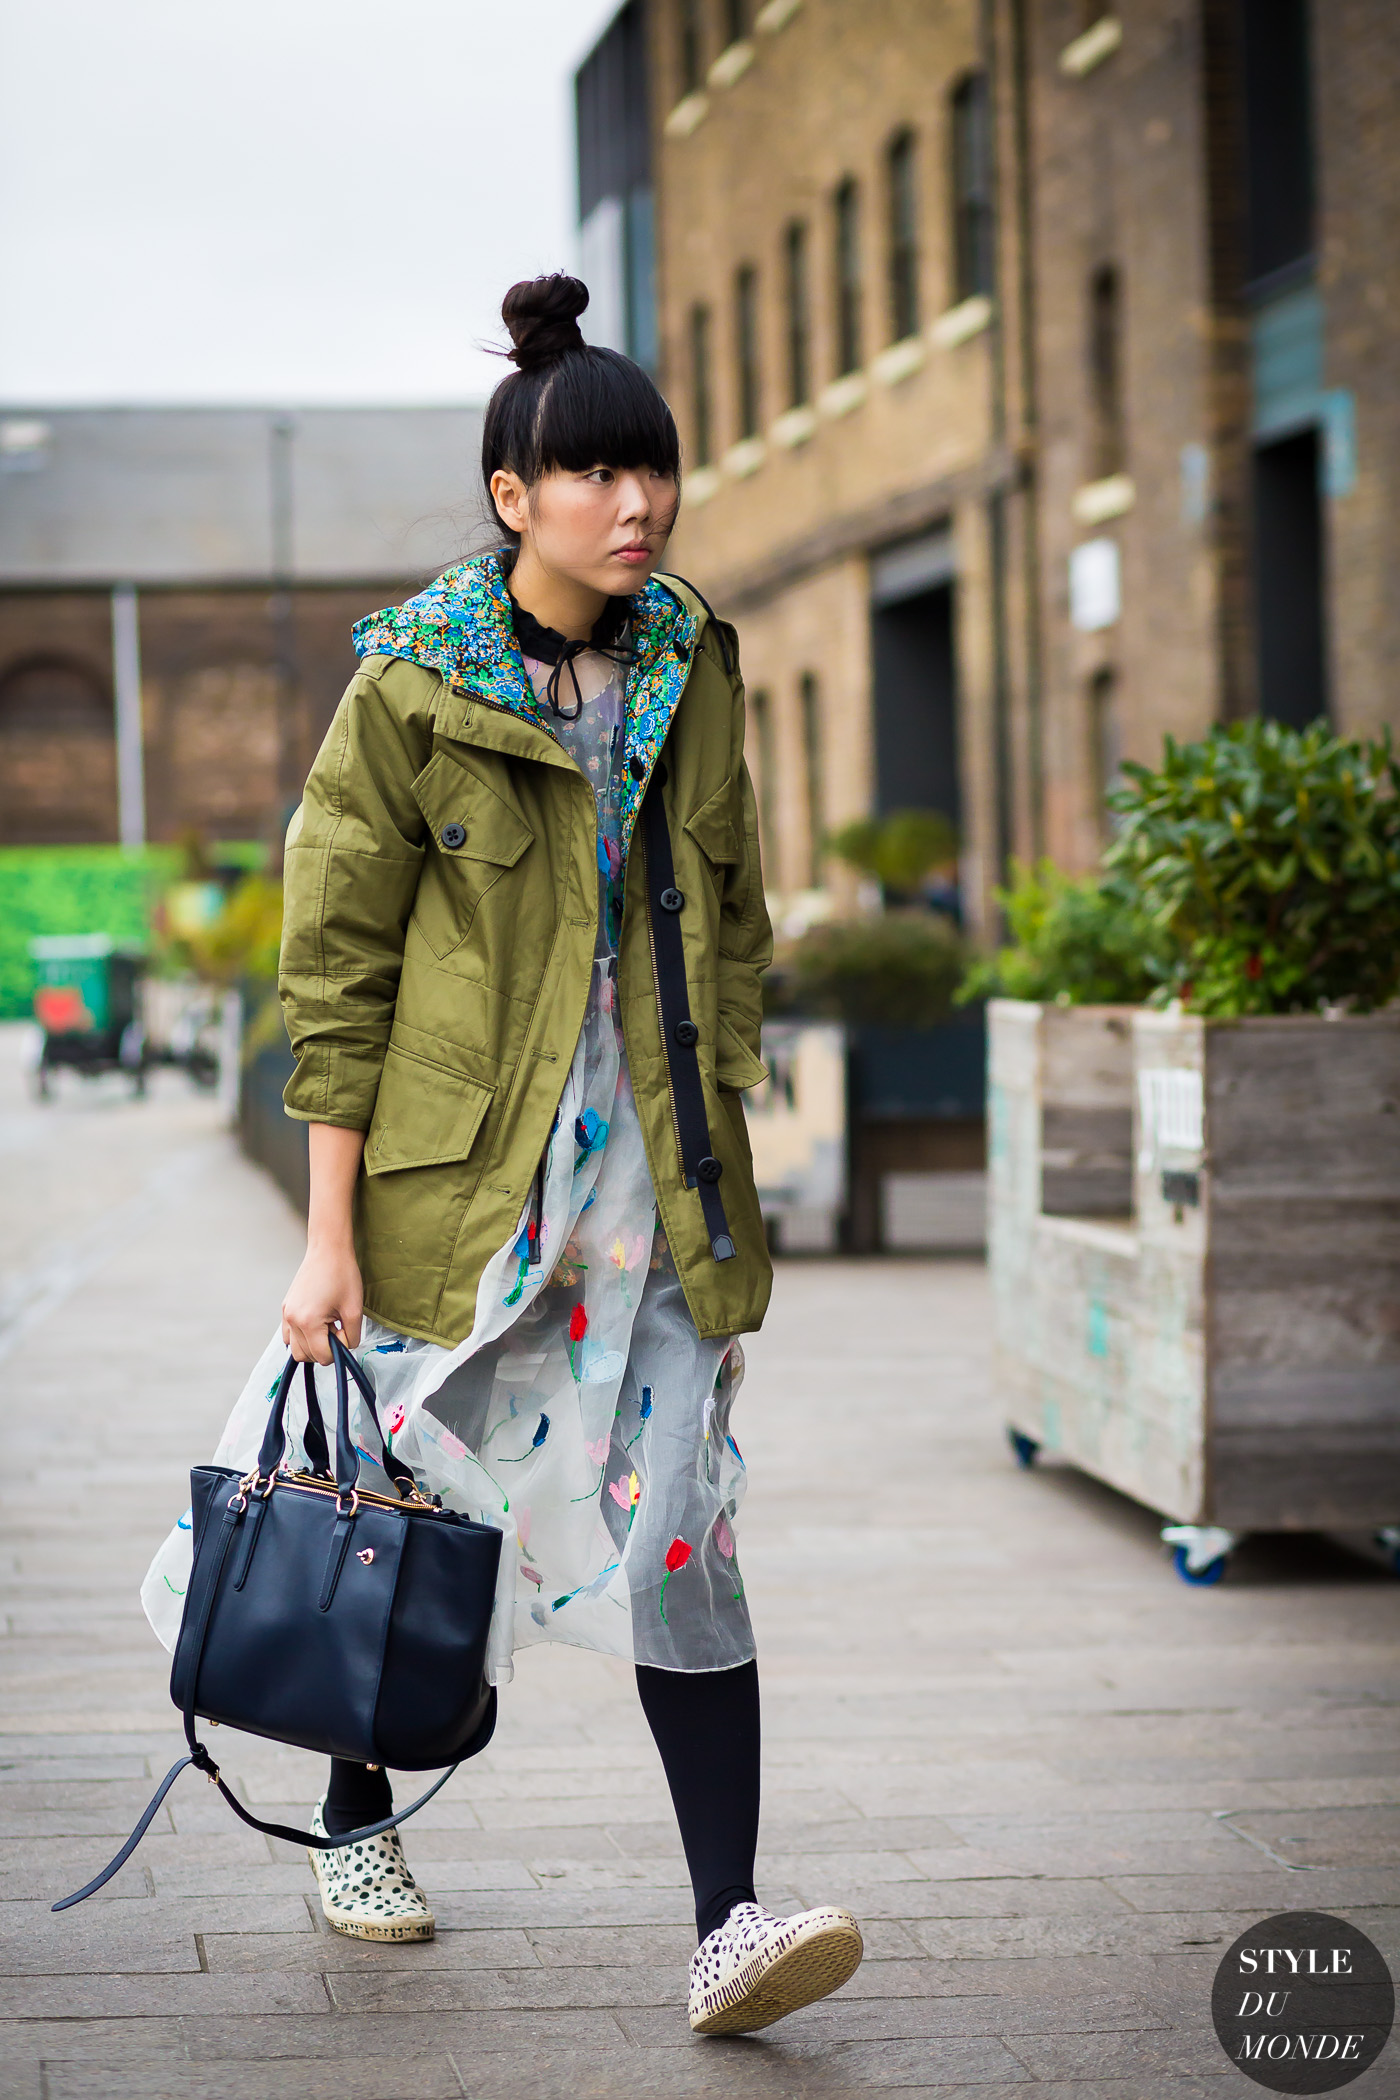 Susie Lau Susie Bubble Style Bubble Street Style Street Fashion Streetsnaps by STYLEDUMONDE Street Style Fashion Photography